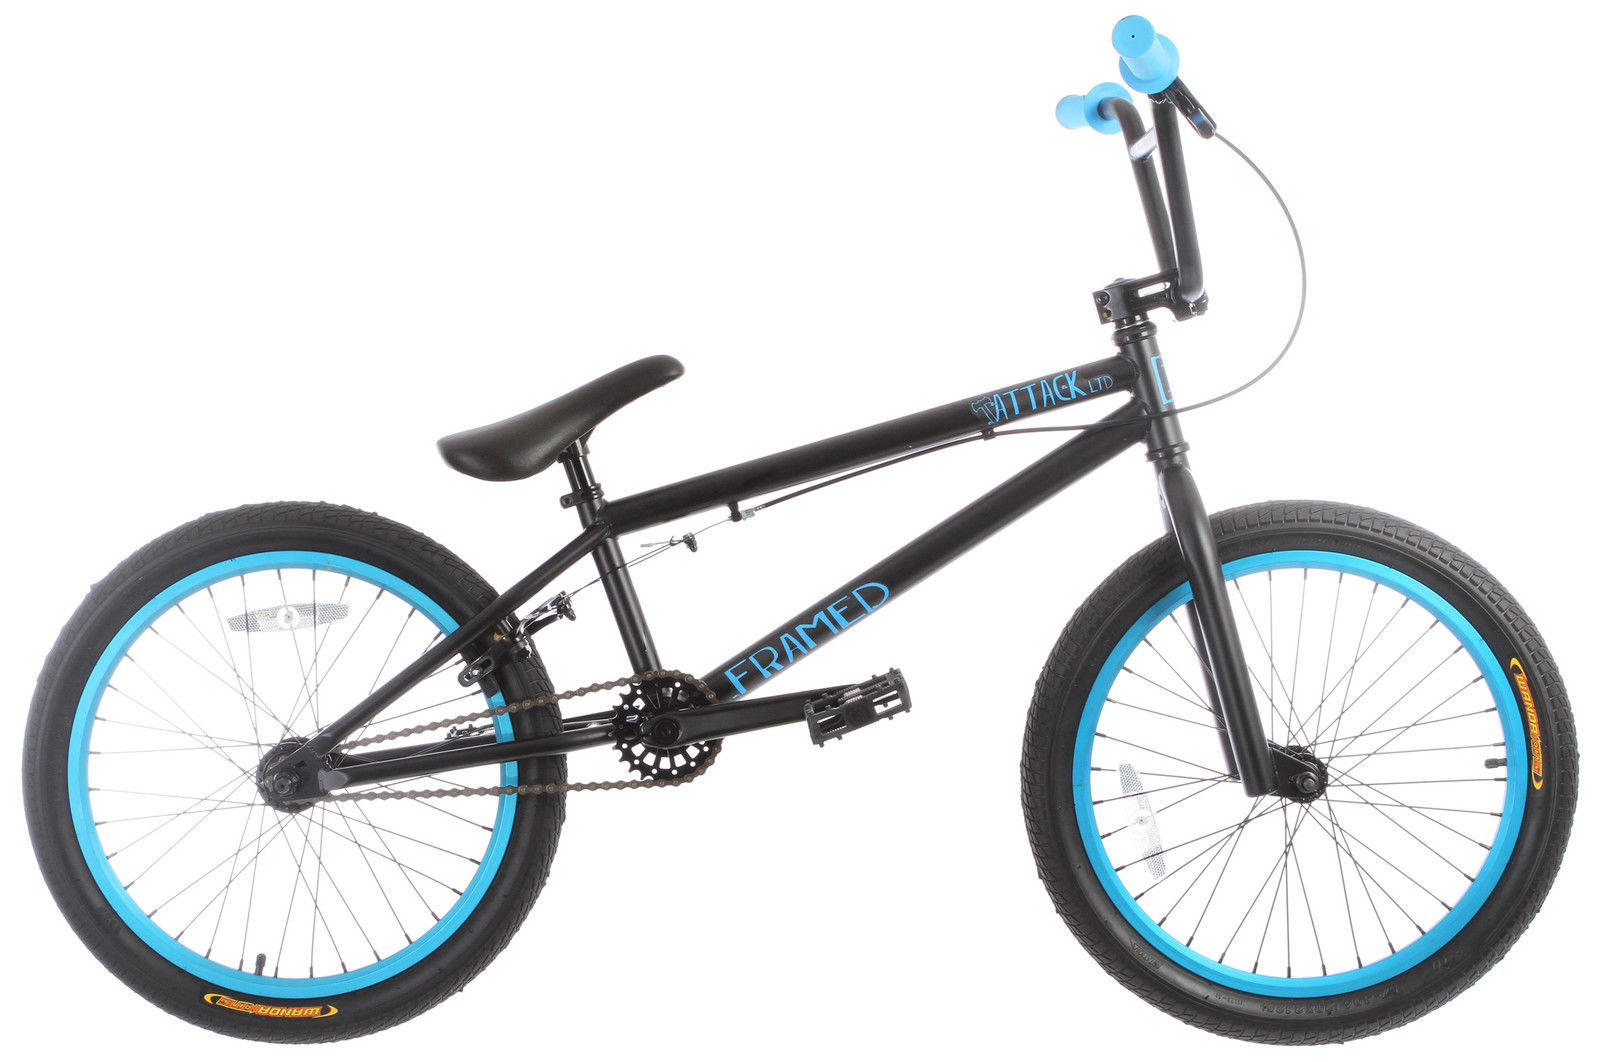 Up to 60% Off Select Bikes, Scooters, Skateboards and more @ eBay